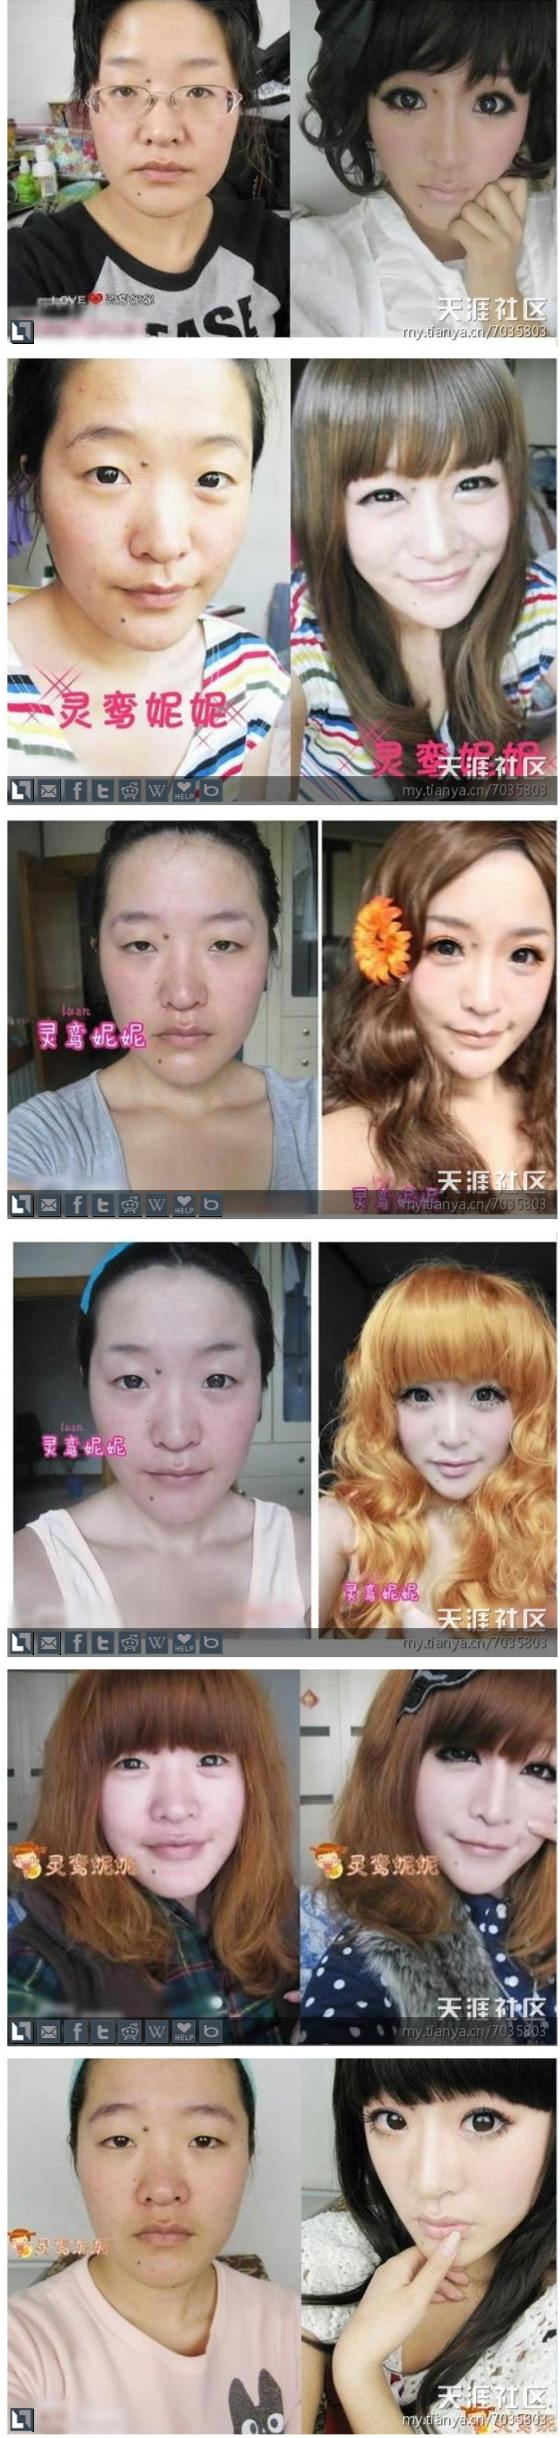 chinese-girl-after-makeup-different-faces1.jpeg